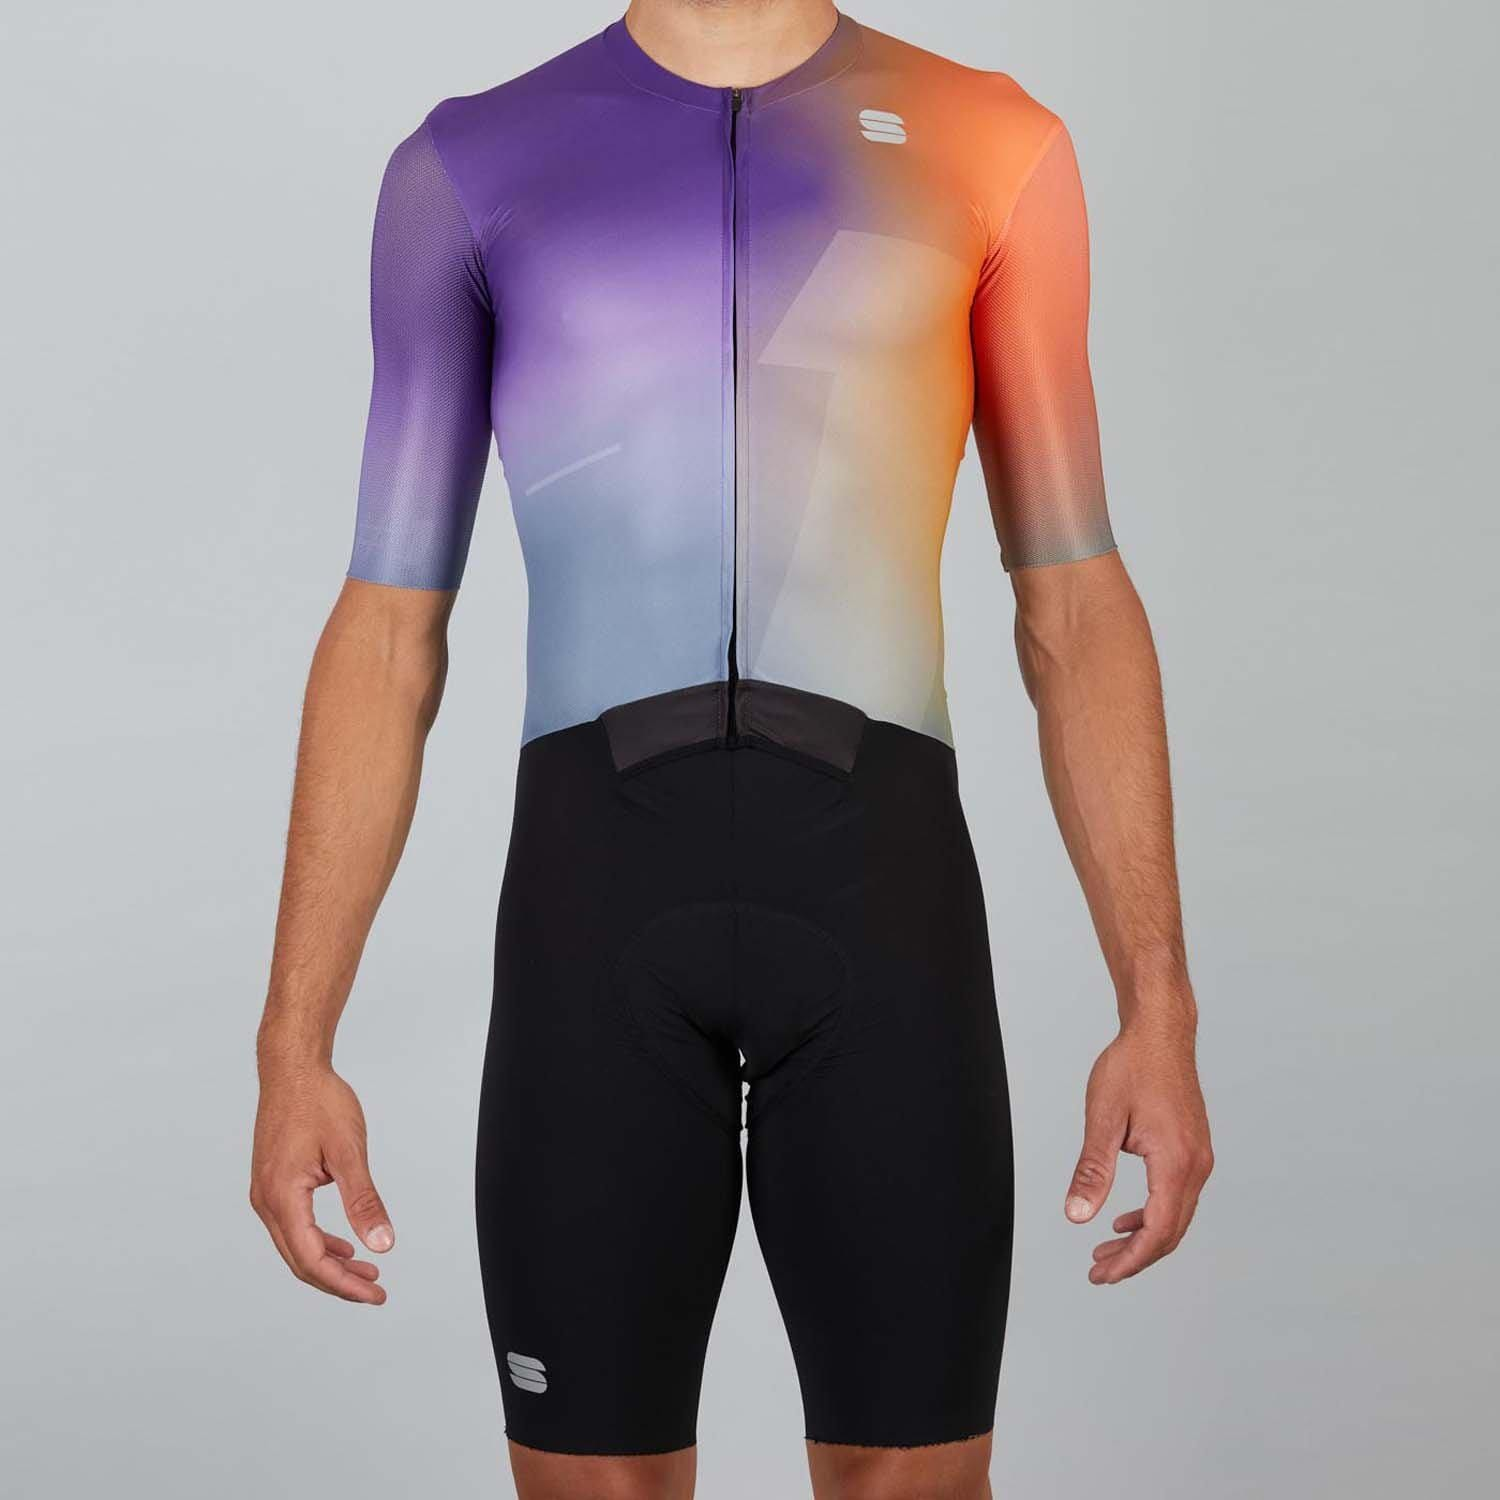 Sportful-Sportful Bomber Suit-Orange/Violet-S-SF210000012-saddleback-elite-performance-cycling